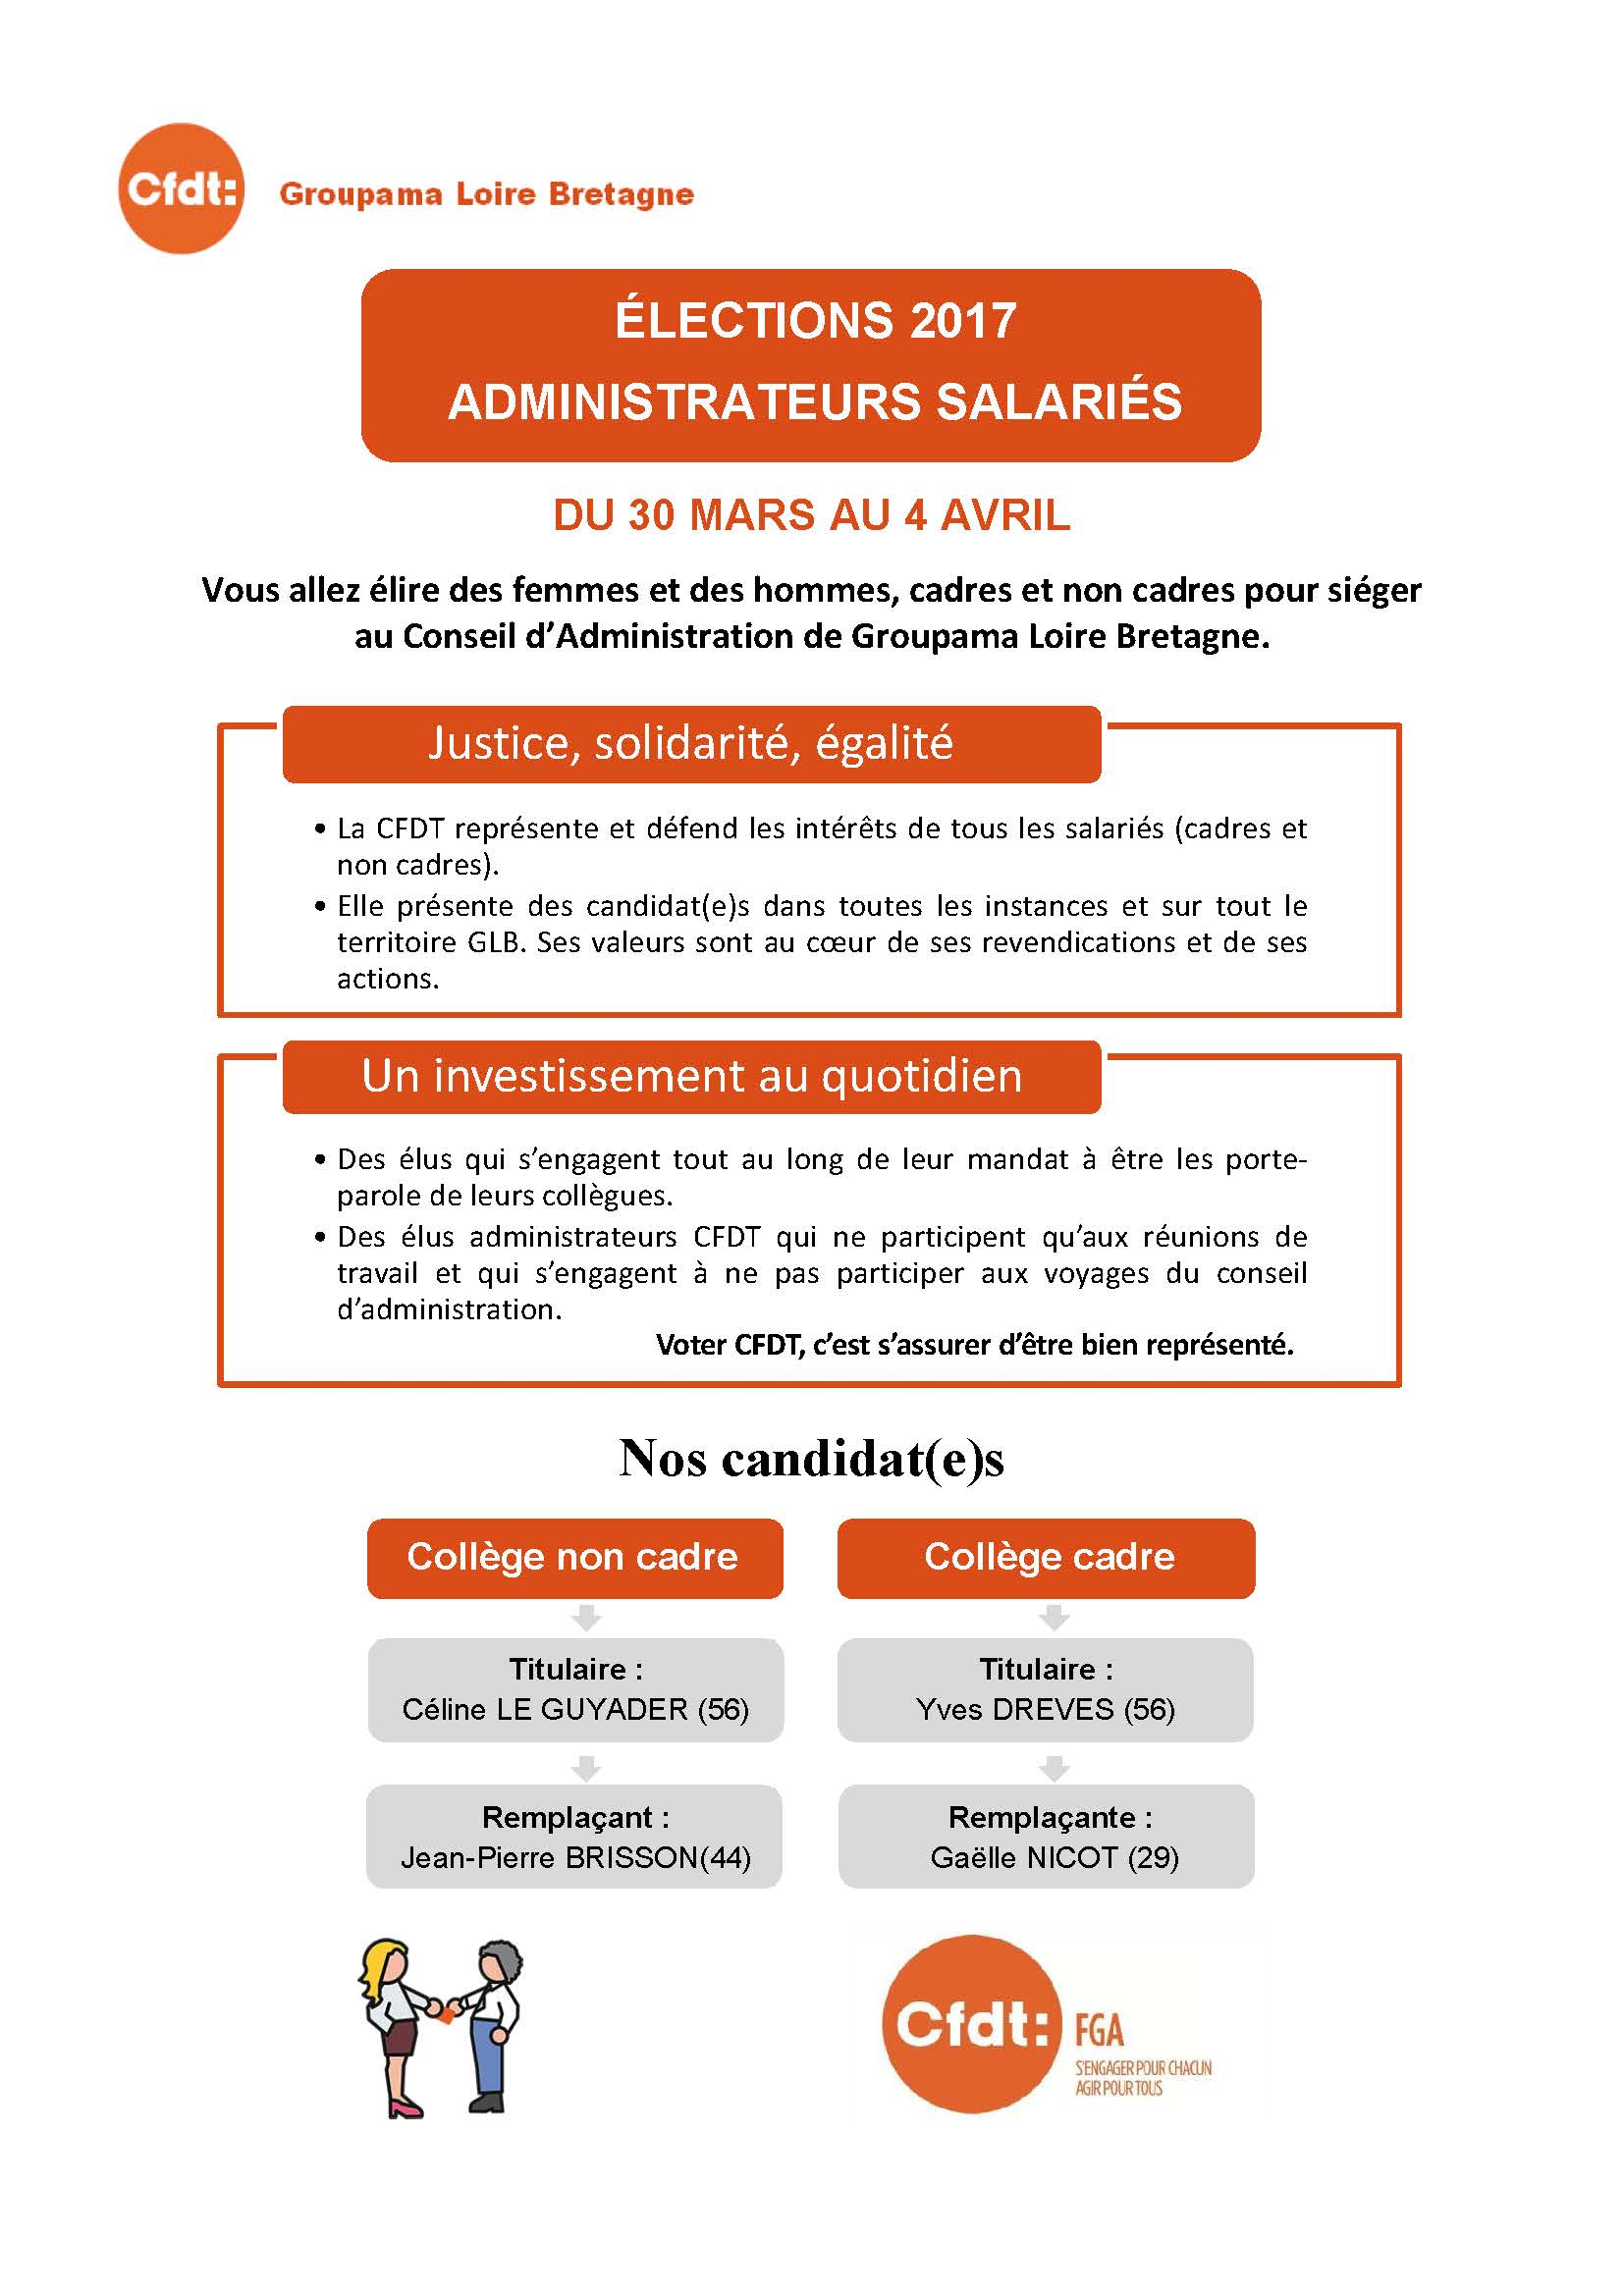 professiondefoiadminsitrateursalarié2017